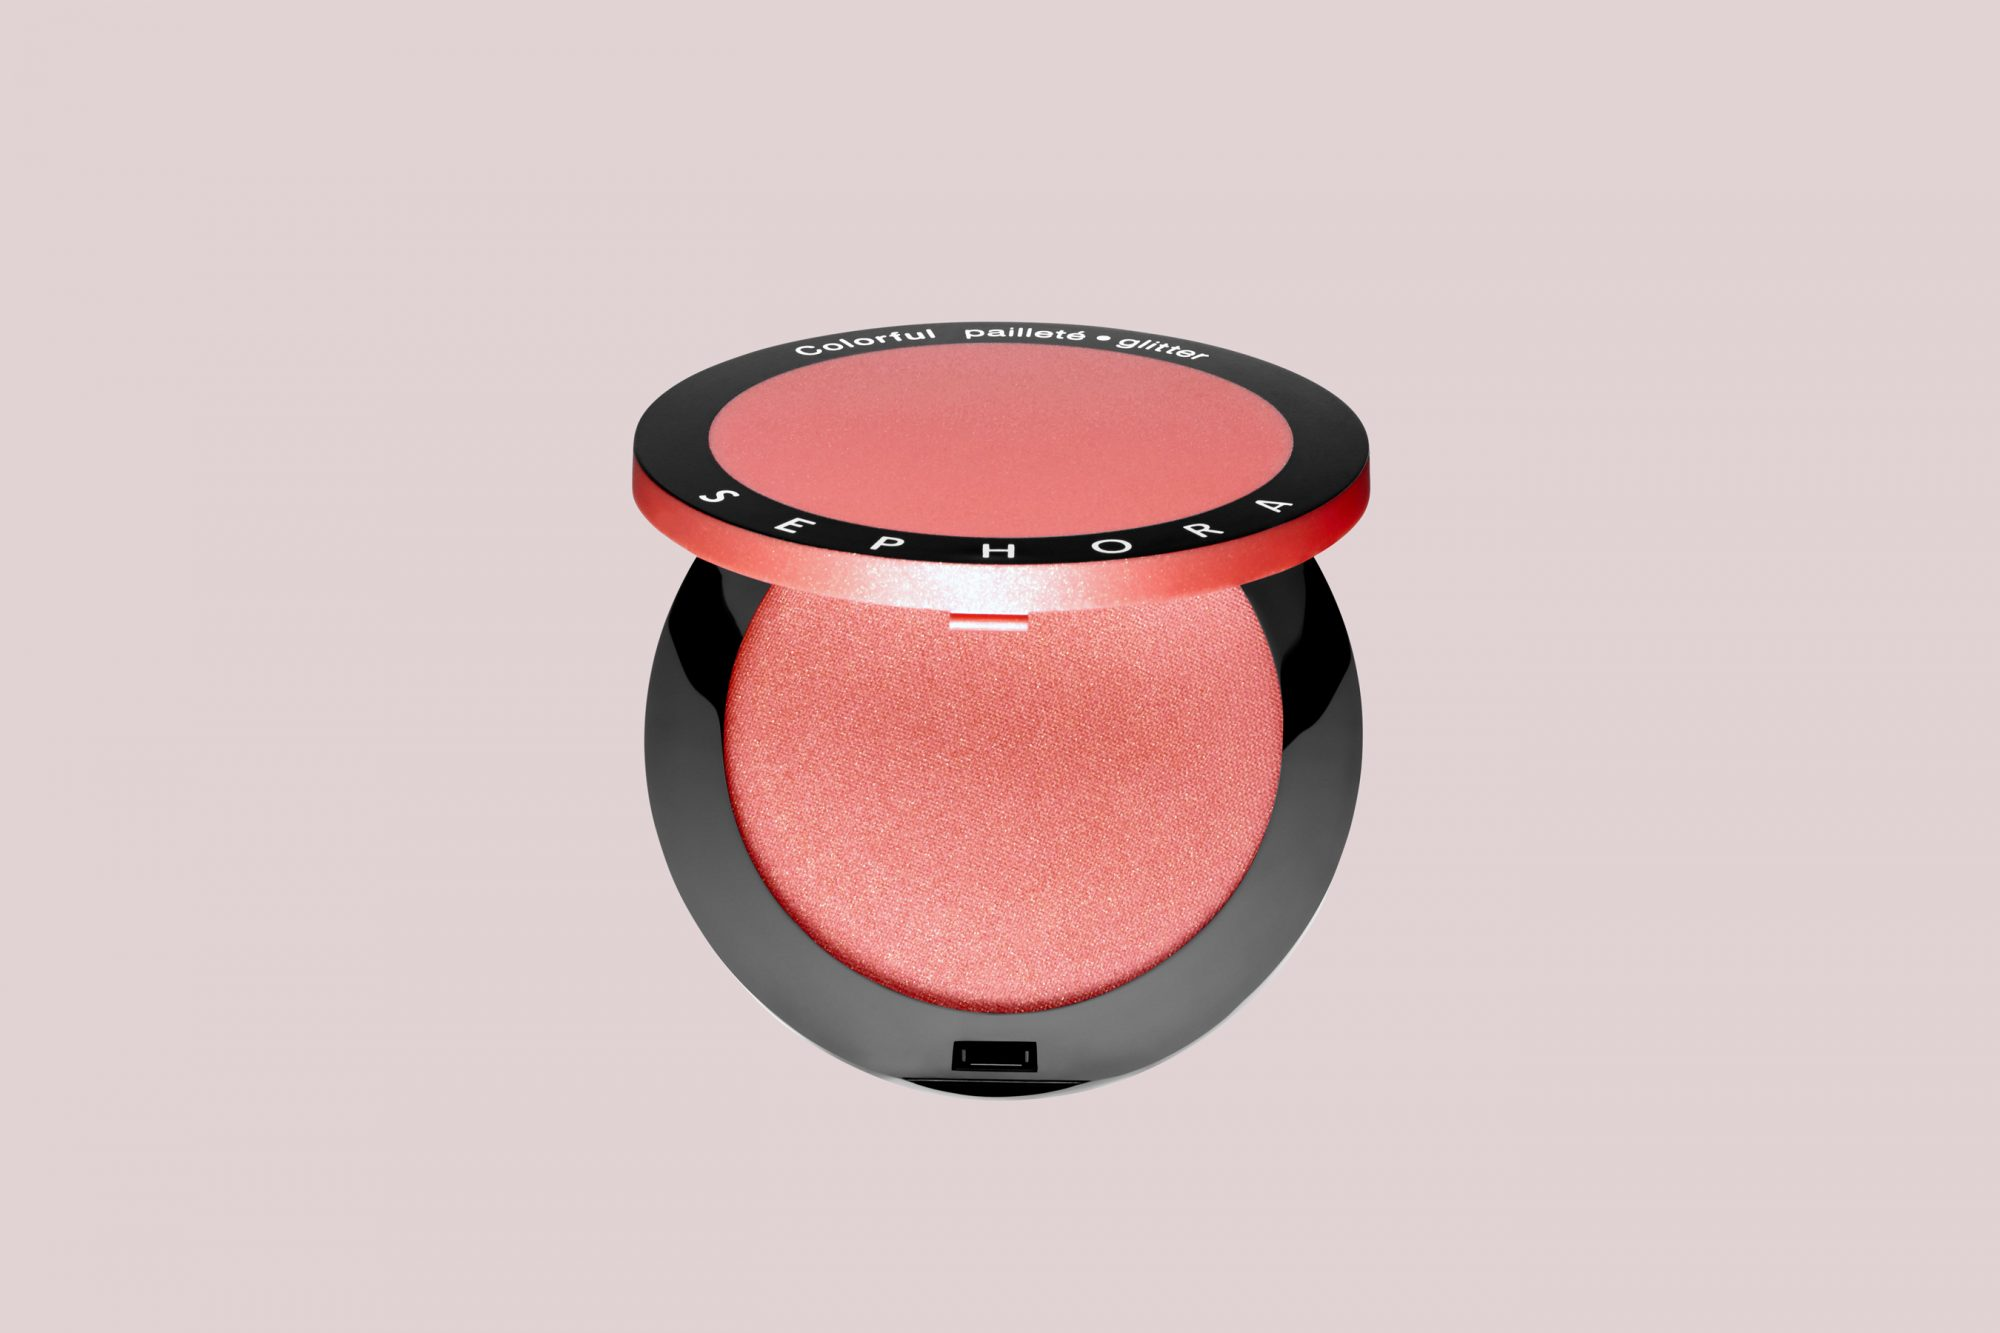 sephora intense old rose face powder